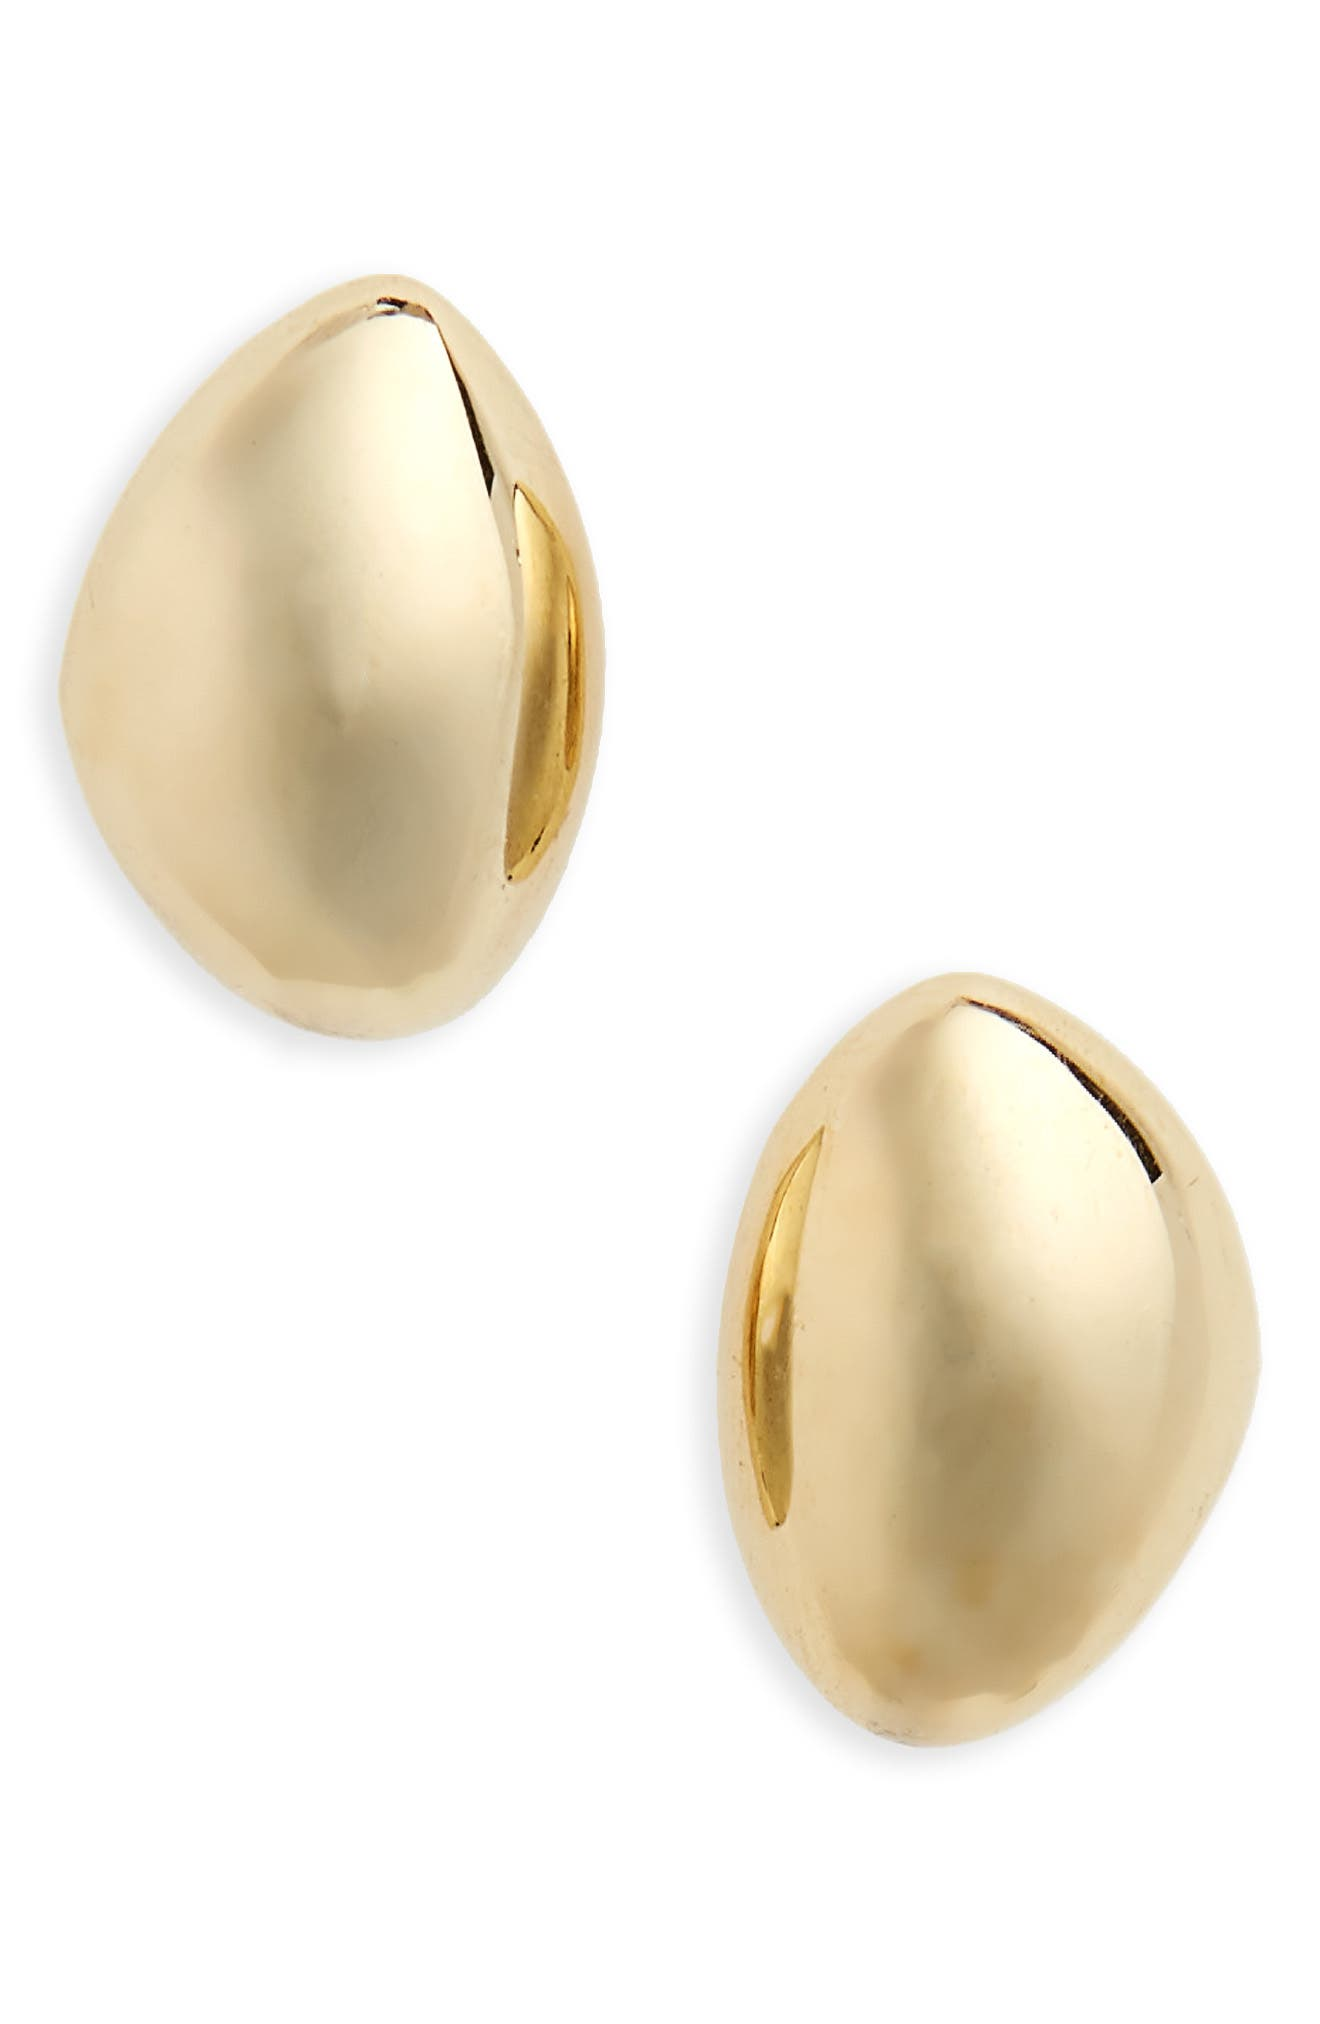 Sabi Stud Earrings,                         Main,                         color, 710